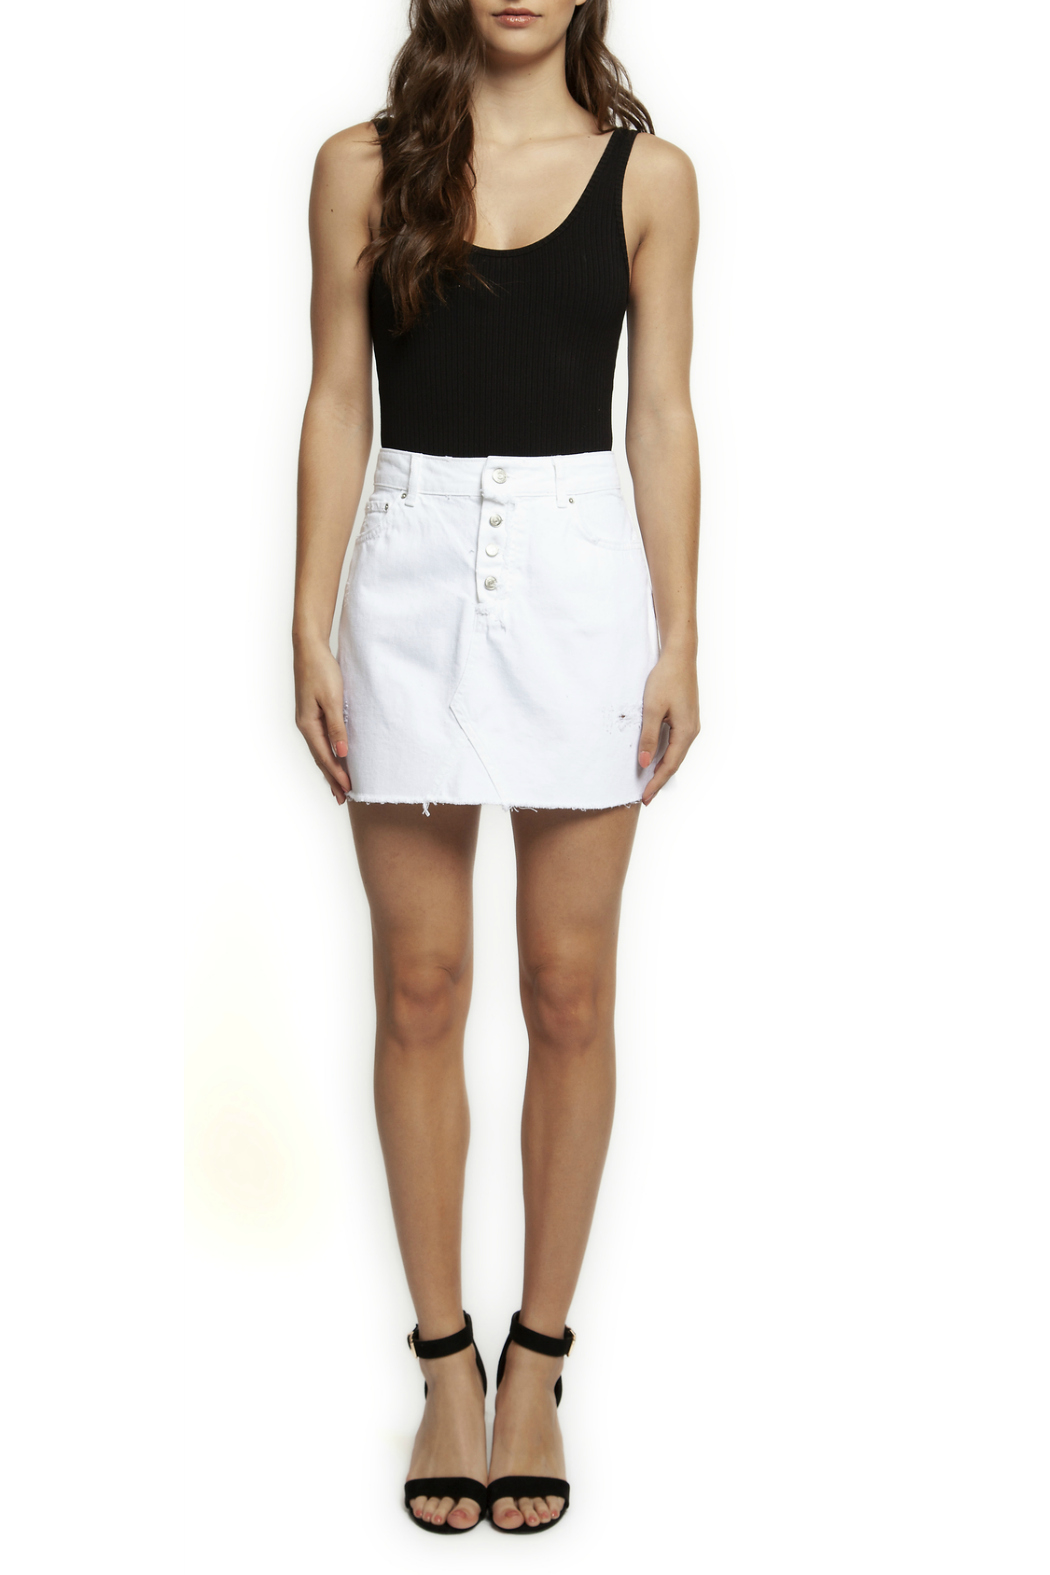 0dce2f0d9f Dex Fray Hem Button Front Denim Mini Skirt from New Jersey by ...